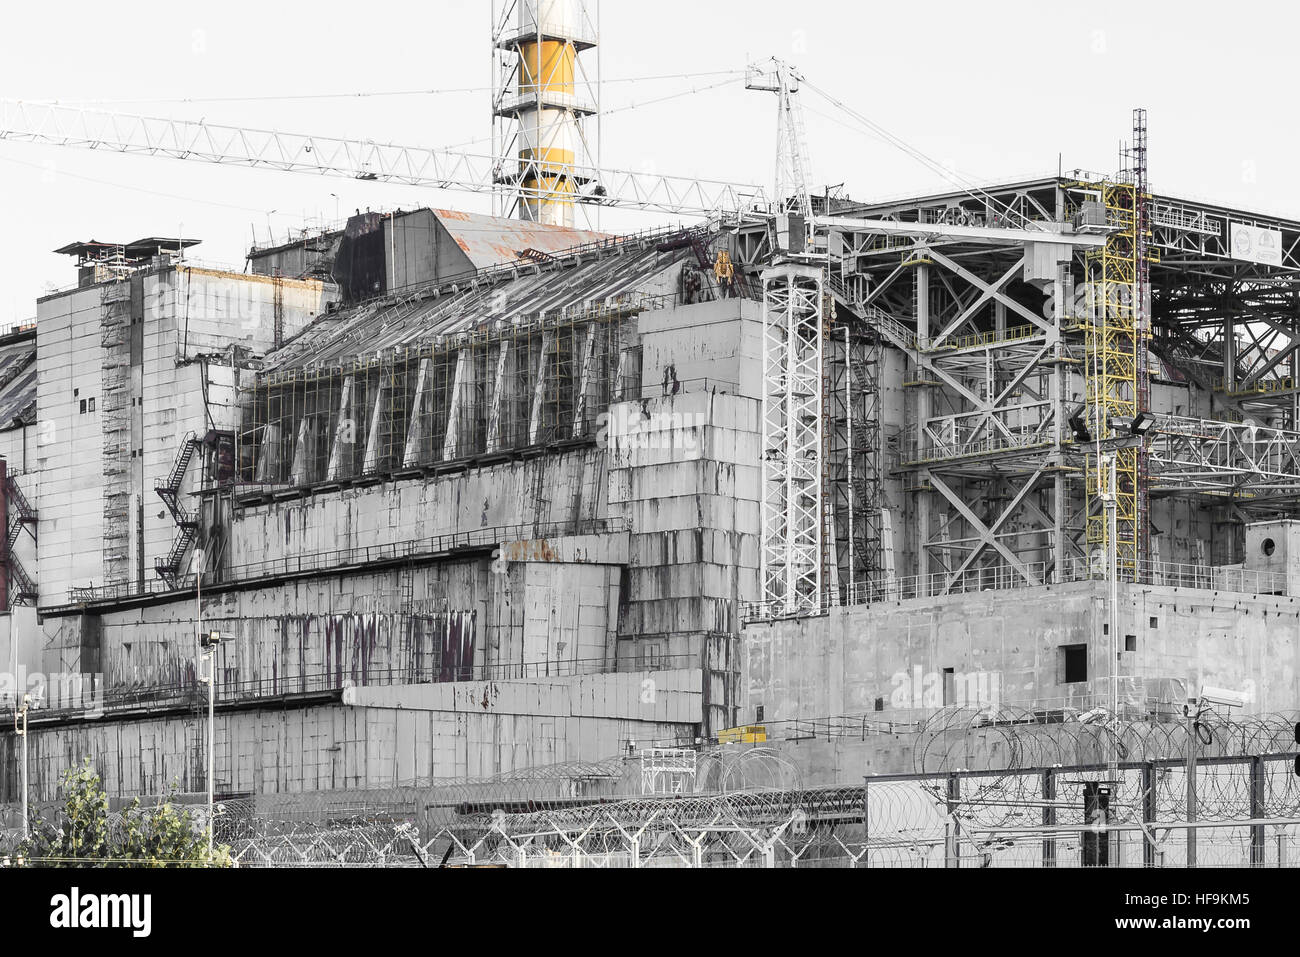 Old sarcophagus of Chernobyl - Stock Image